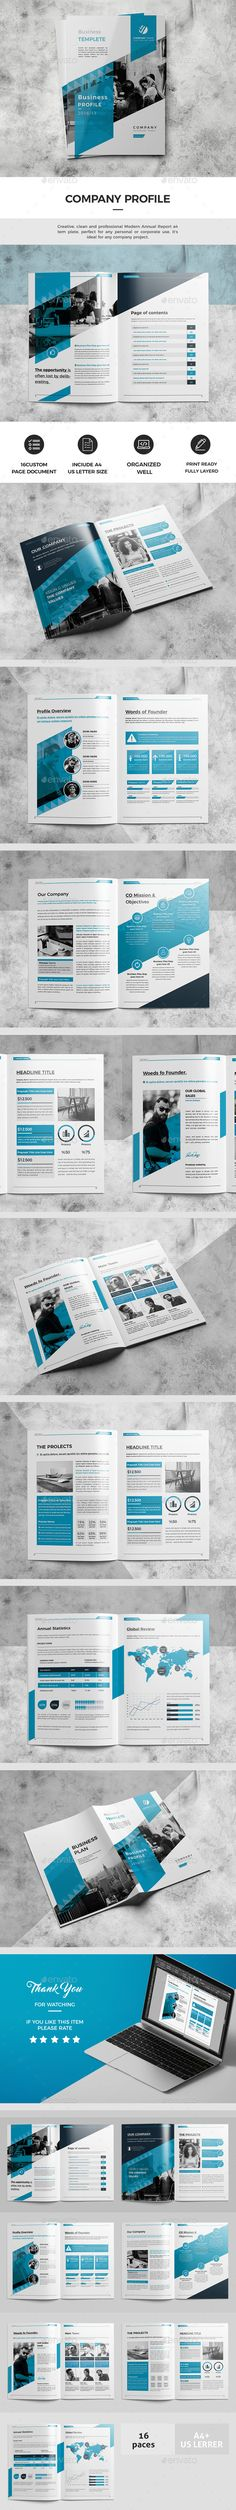 Corporate Business Plan Design Template - Catalogs Brochures Design Template InDesign INDD. Download here: https://graphicriver.net/item/business-plan/19398900?ref=yinkira